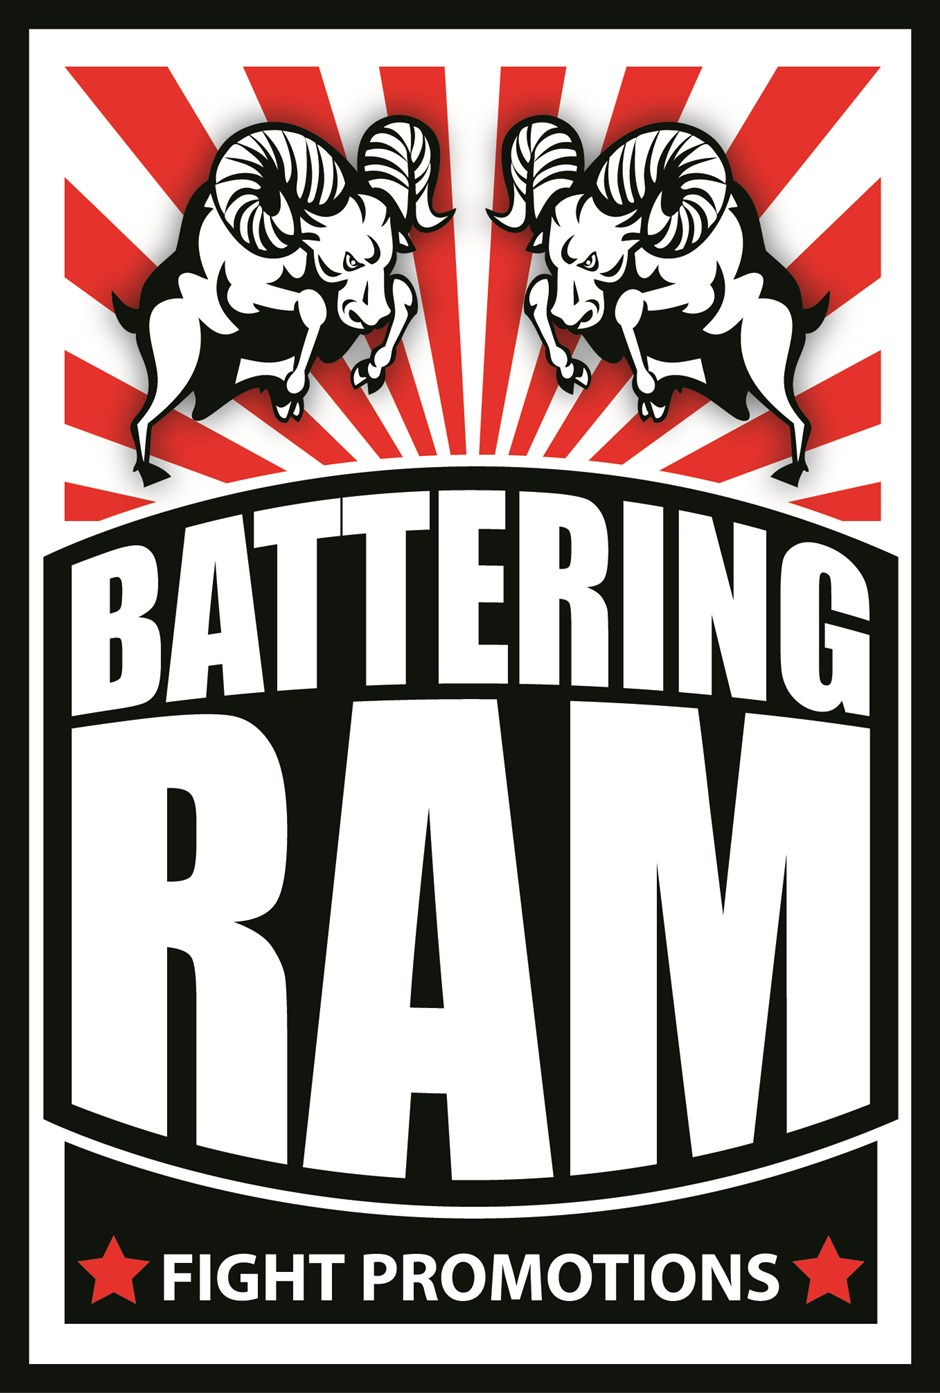 Battering Ram Fight Promotions - Battering Ram Promotions